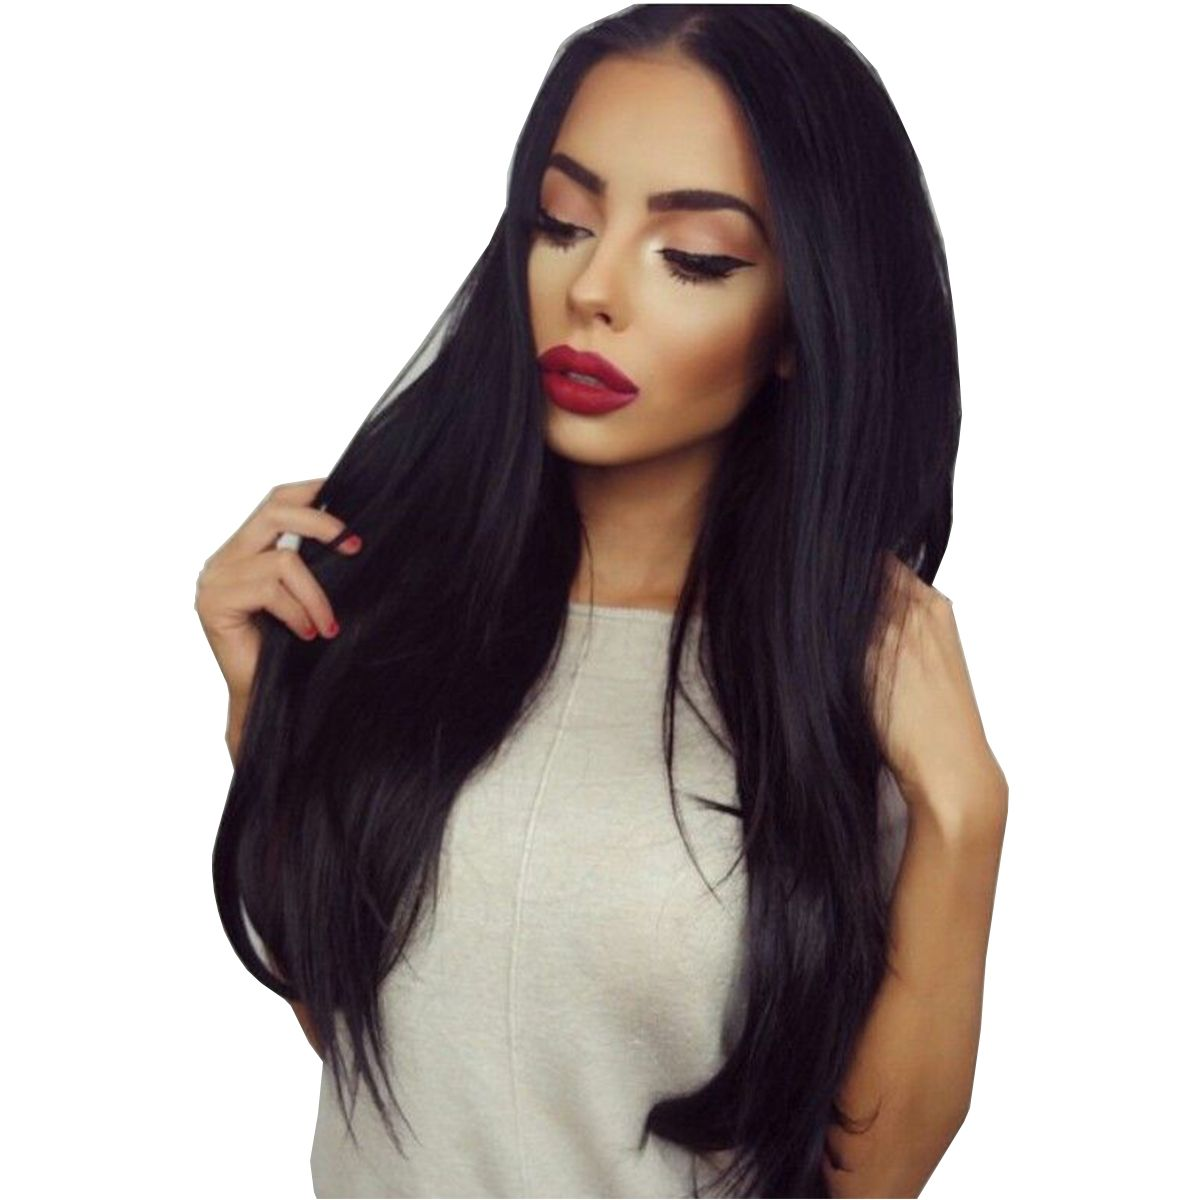 Damon  whats app   8615953252805  synthetic lace front wig  wigs for black  women 6ae0b0e2b3d1